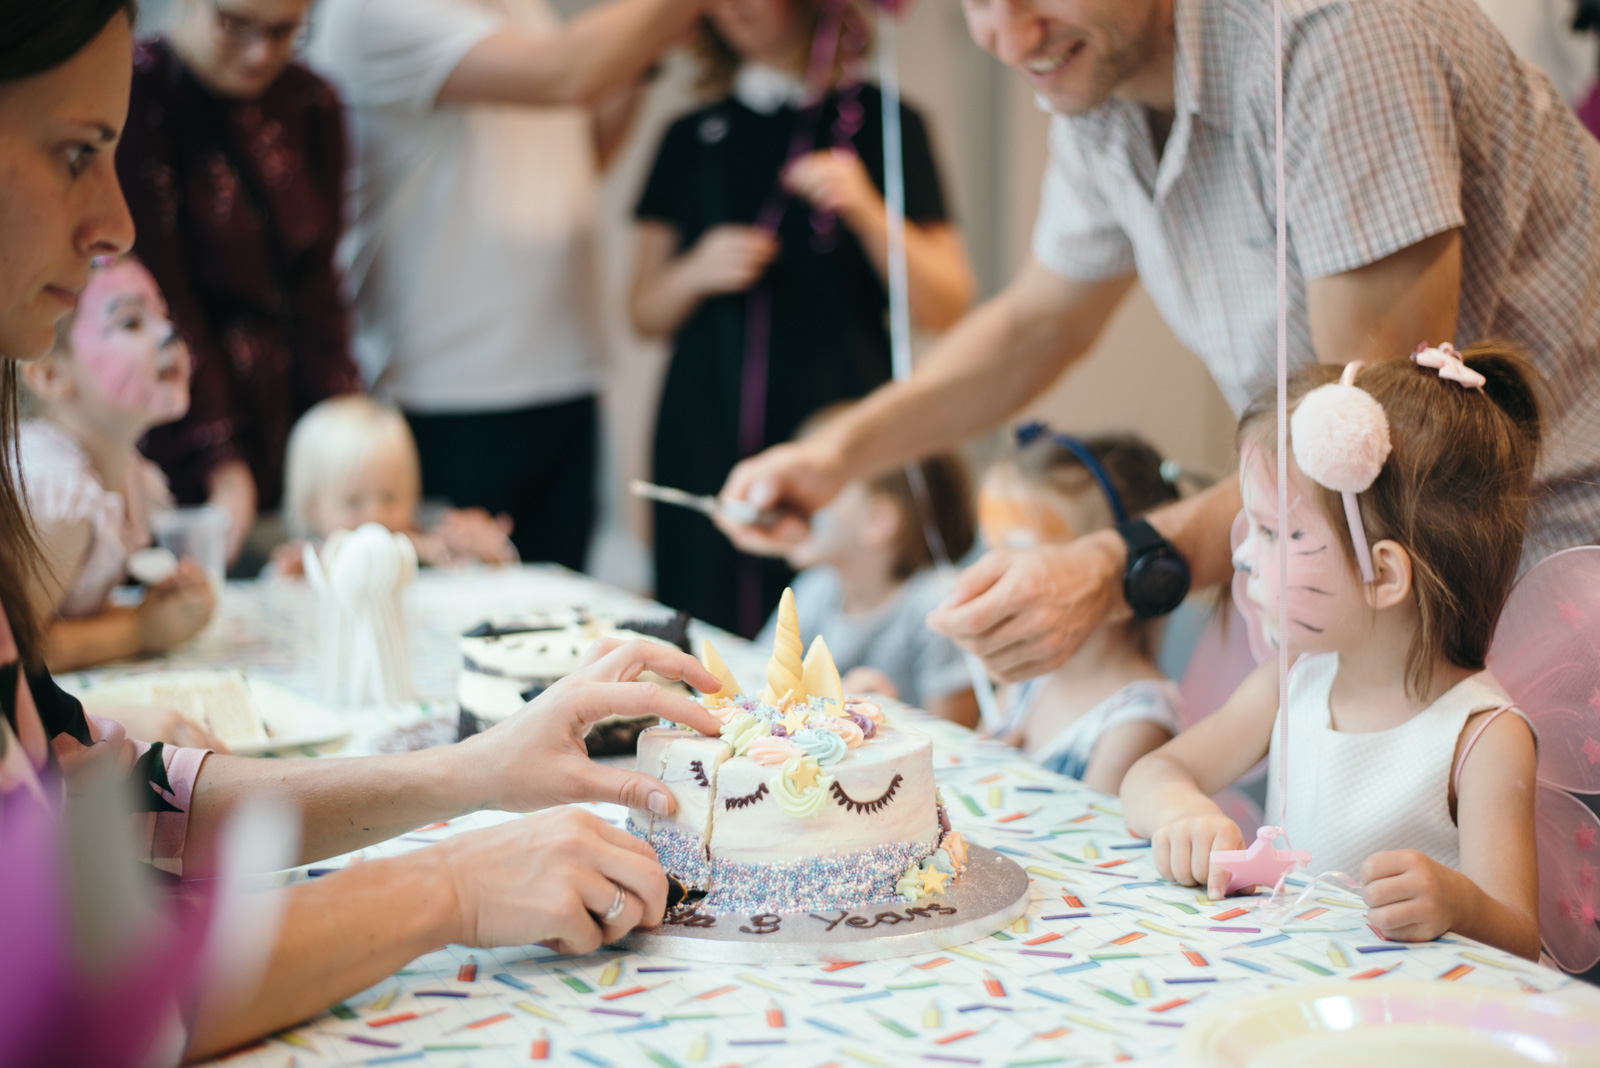 Children birthday party Photography - Perfect to document your special day!